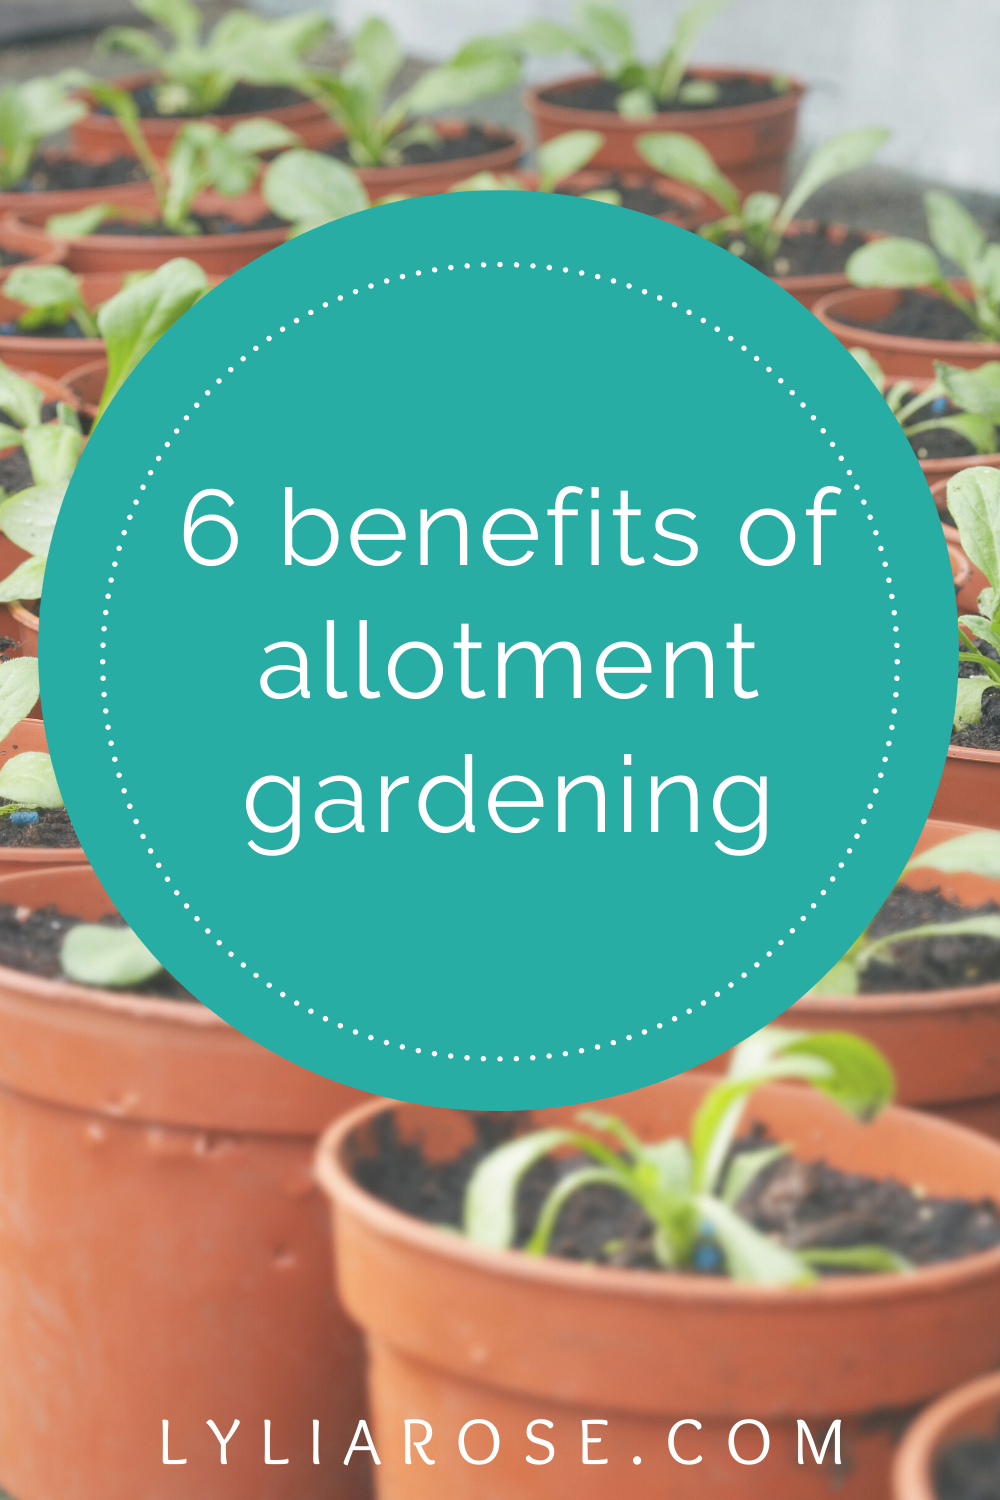 6 benefits of allotment gardening (2)